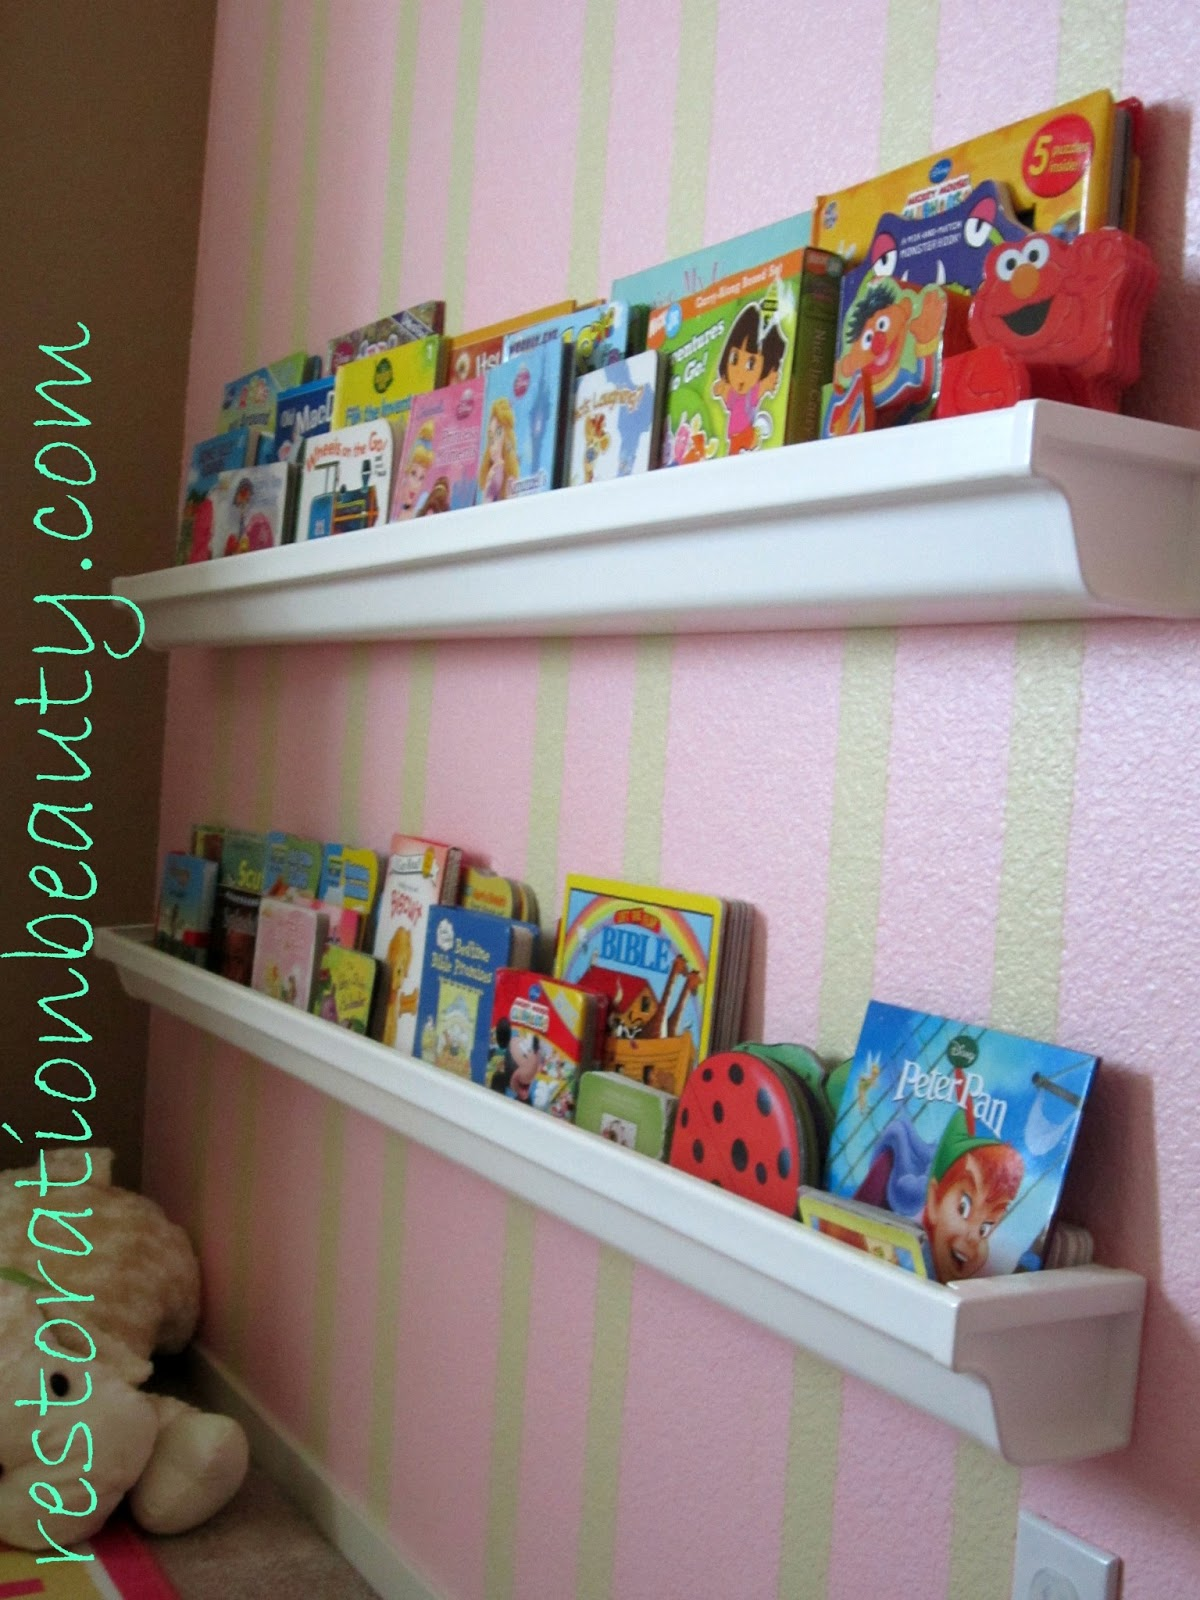 Restoration beauty rain gutter bookshelves for Plastic rain gutter bookshelf